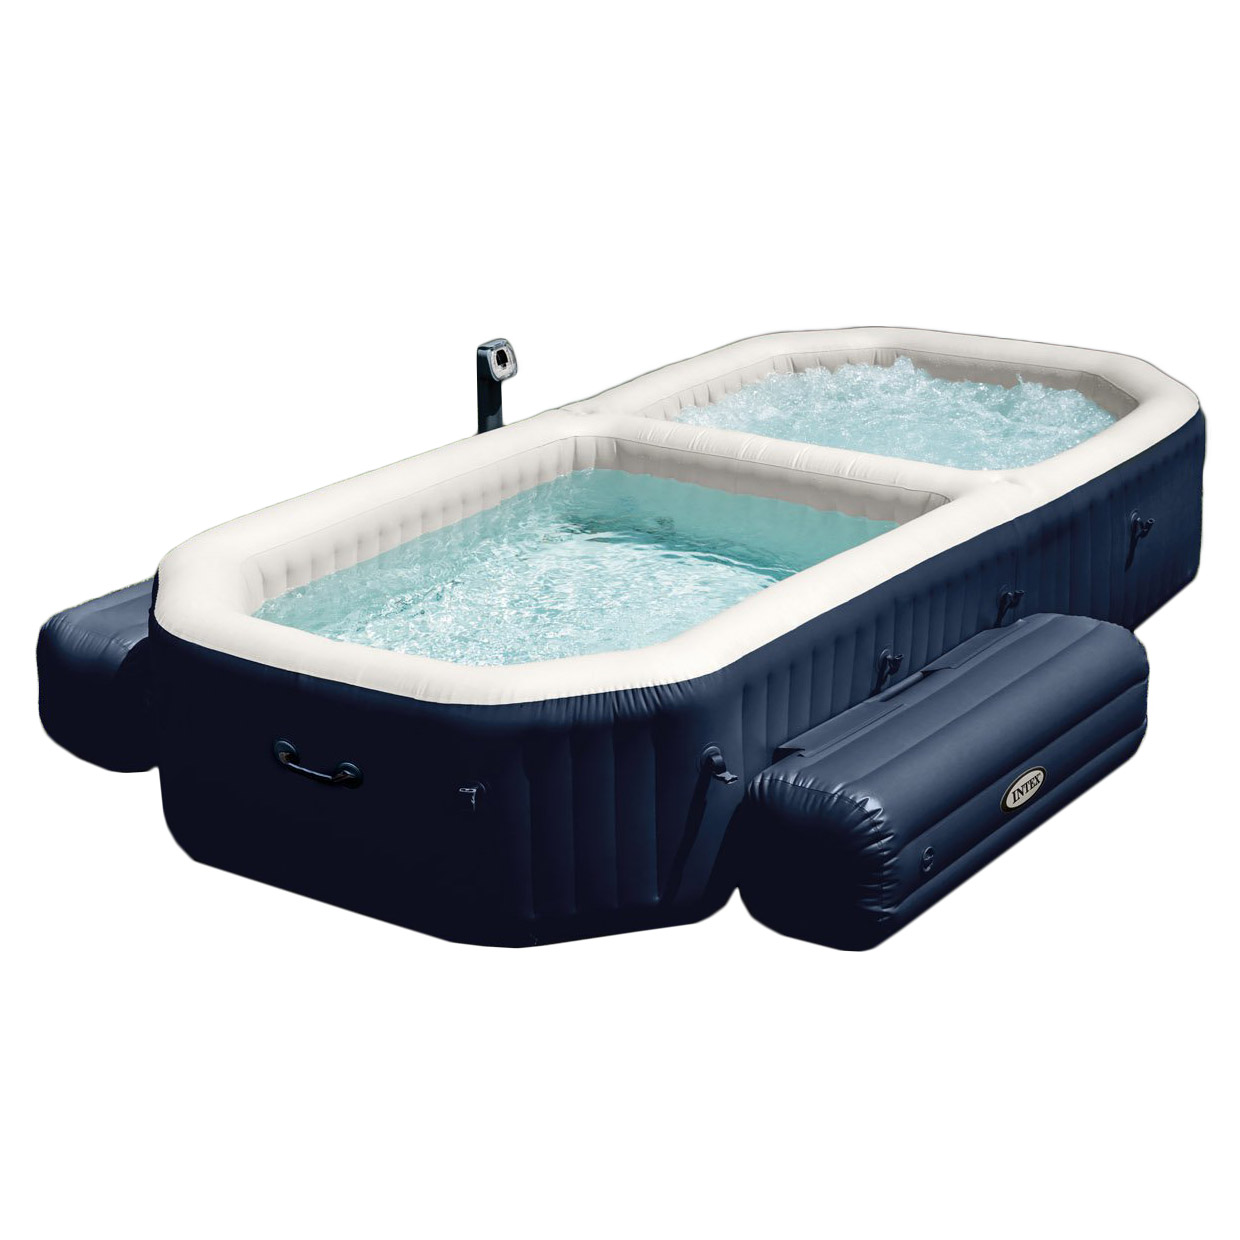 Intex PureSpa 4 Person Inflatable All in One Bubble Massage Hot Tub and Pool by Intex